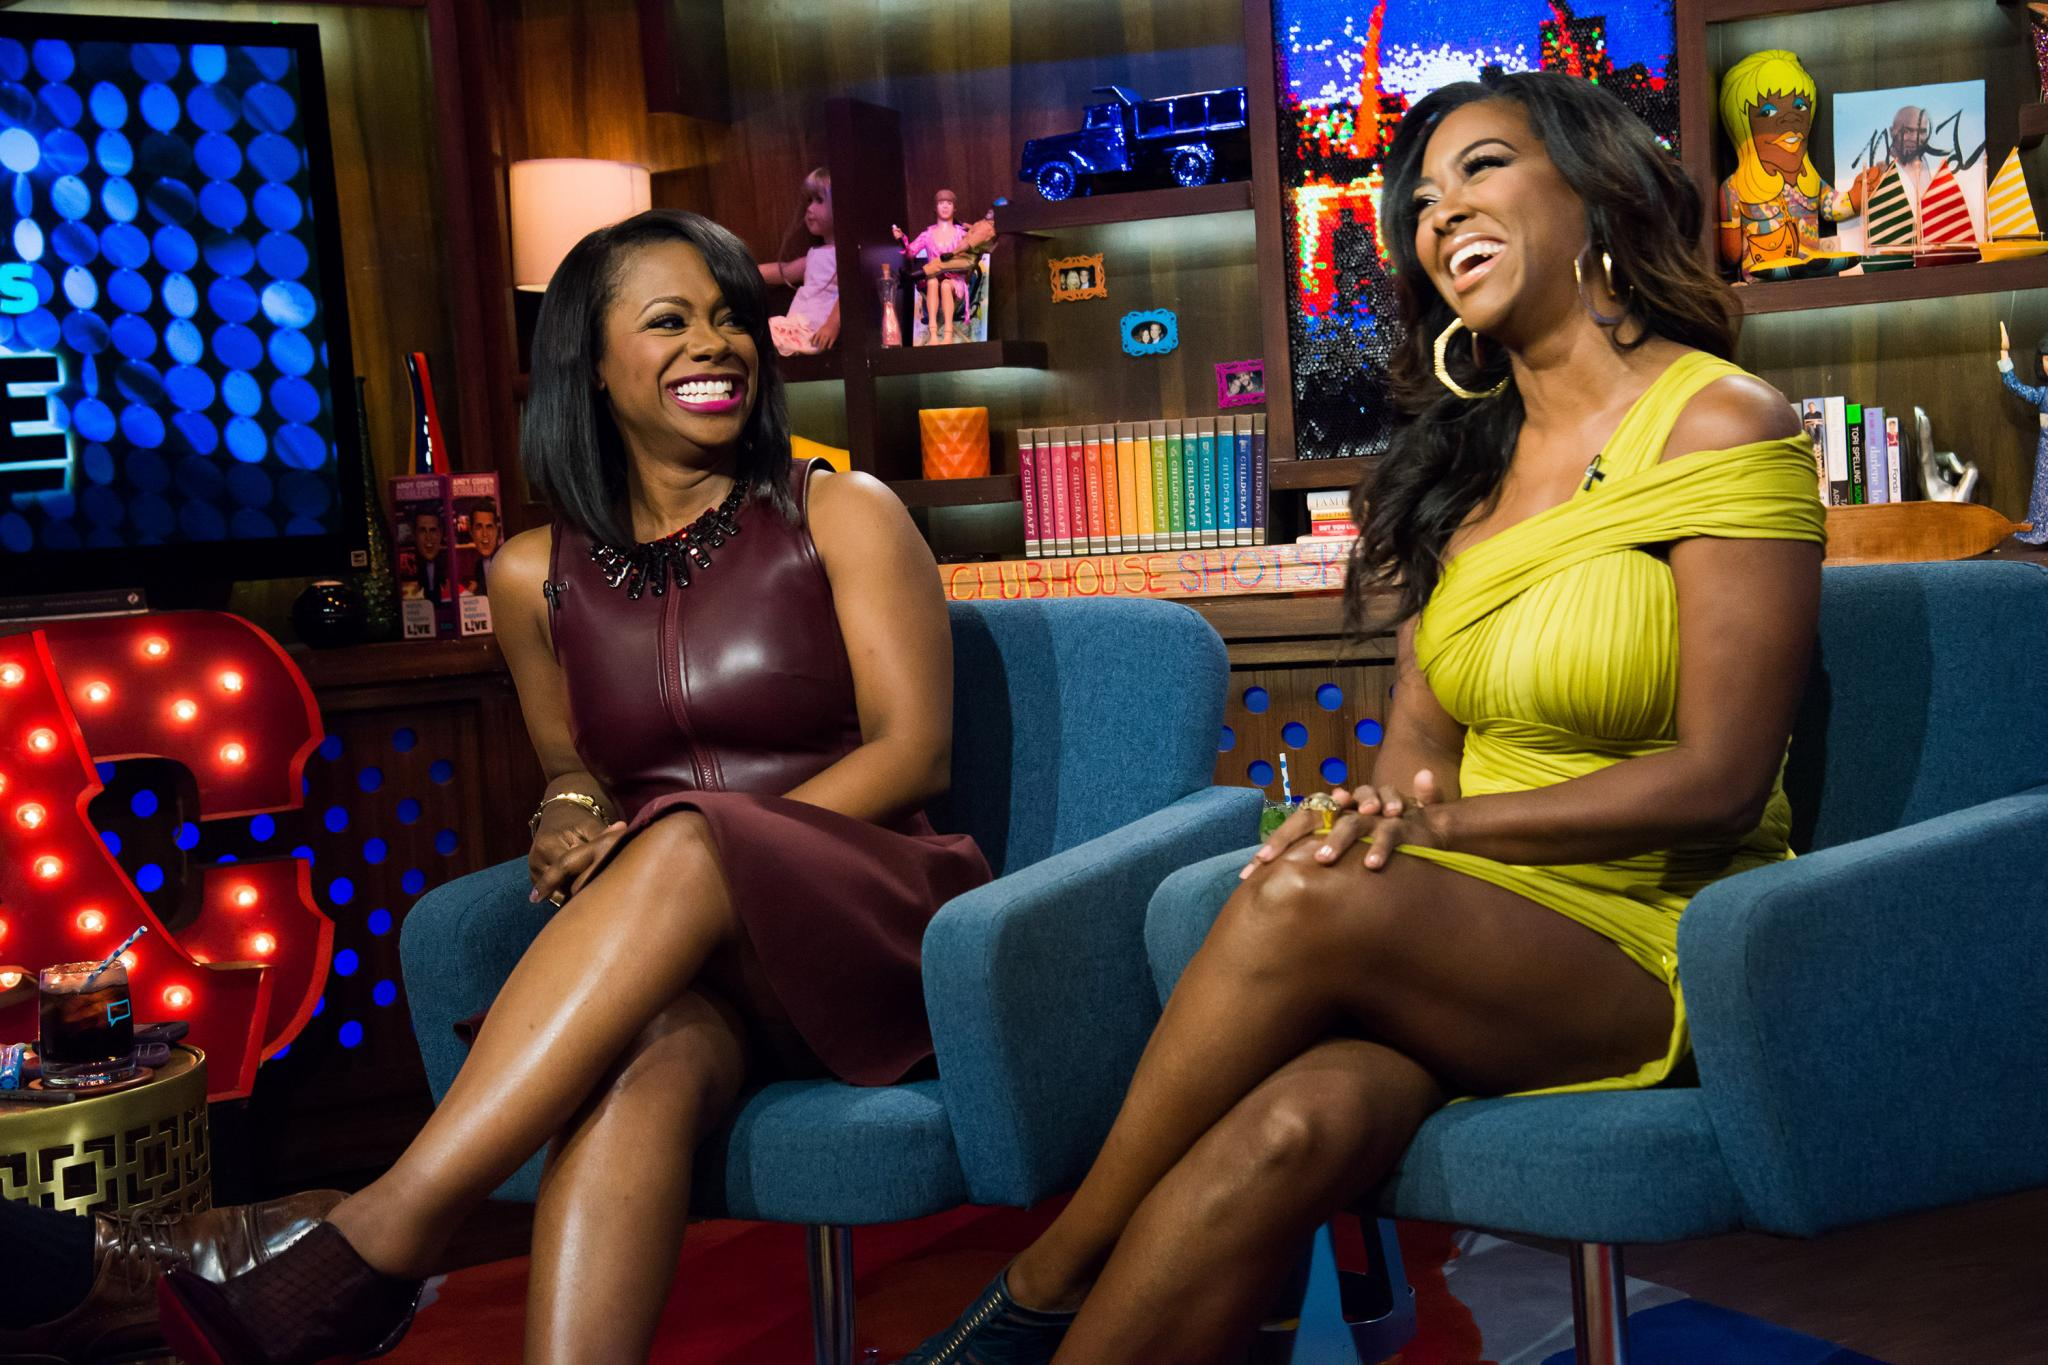 Kandi Burruss Has A New 'Speak On It' Episode Out - See It Here To Find Out Why People Are Slamming Kenya Moore